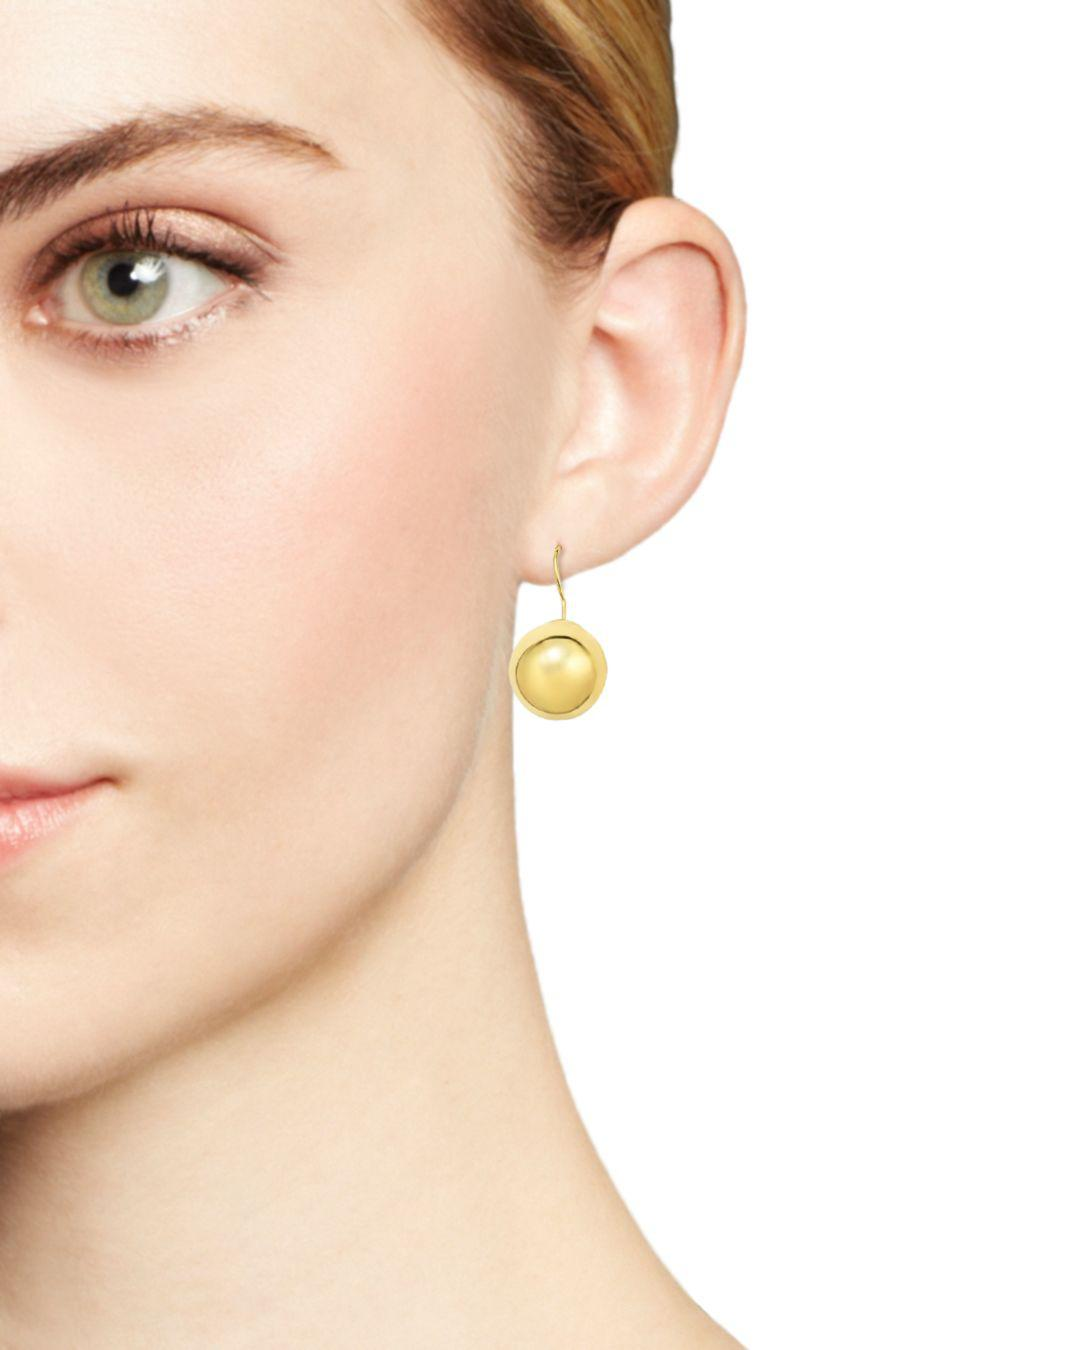 173a4a93f Lyst - Bloomingdale's 14k Yellow Gold Ball Earrings in Metallic